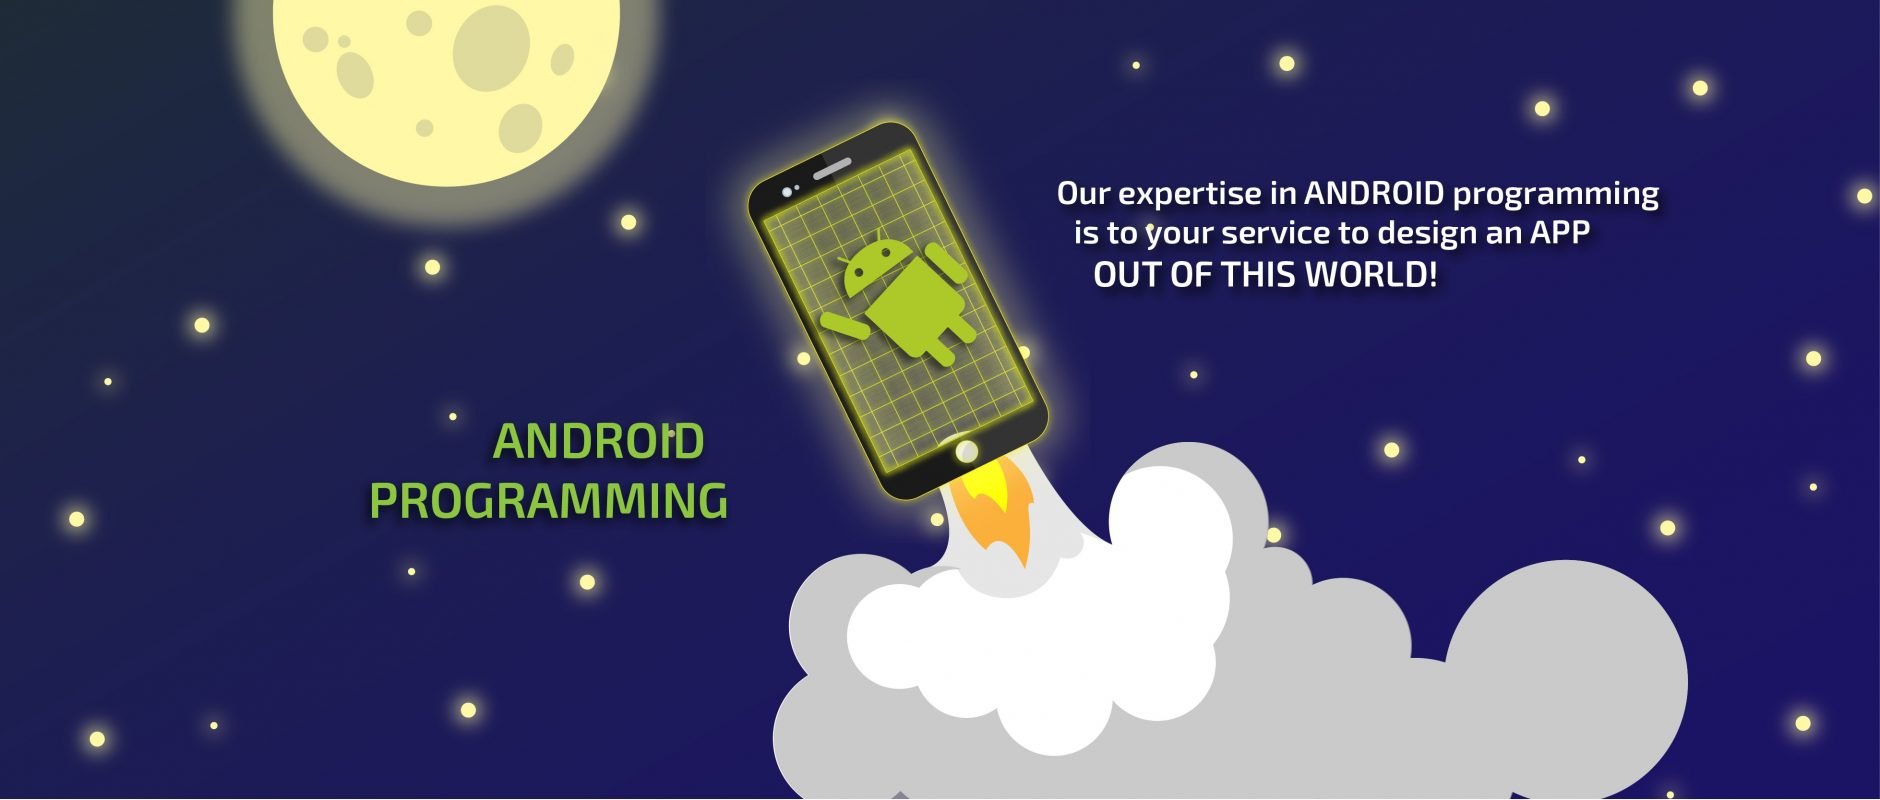 SLIDE LG - ANDROID PROGRAMMING by TC-WEB